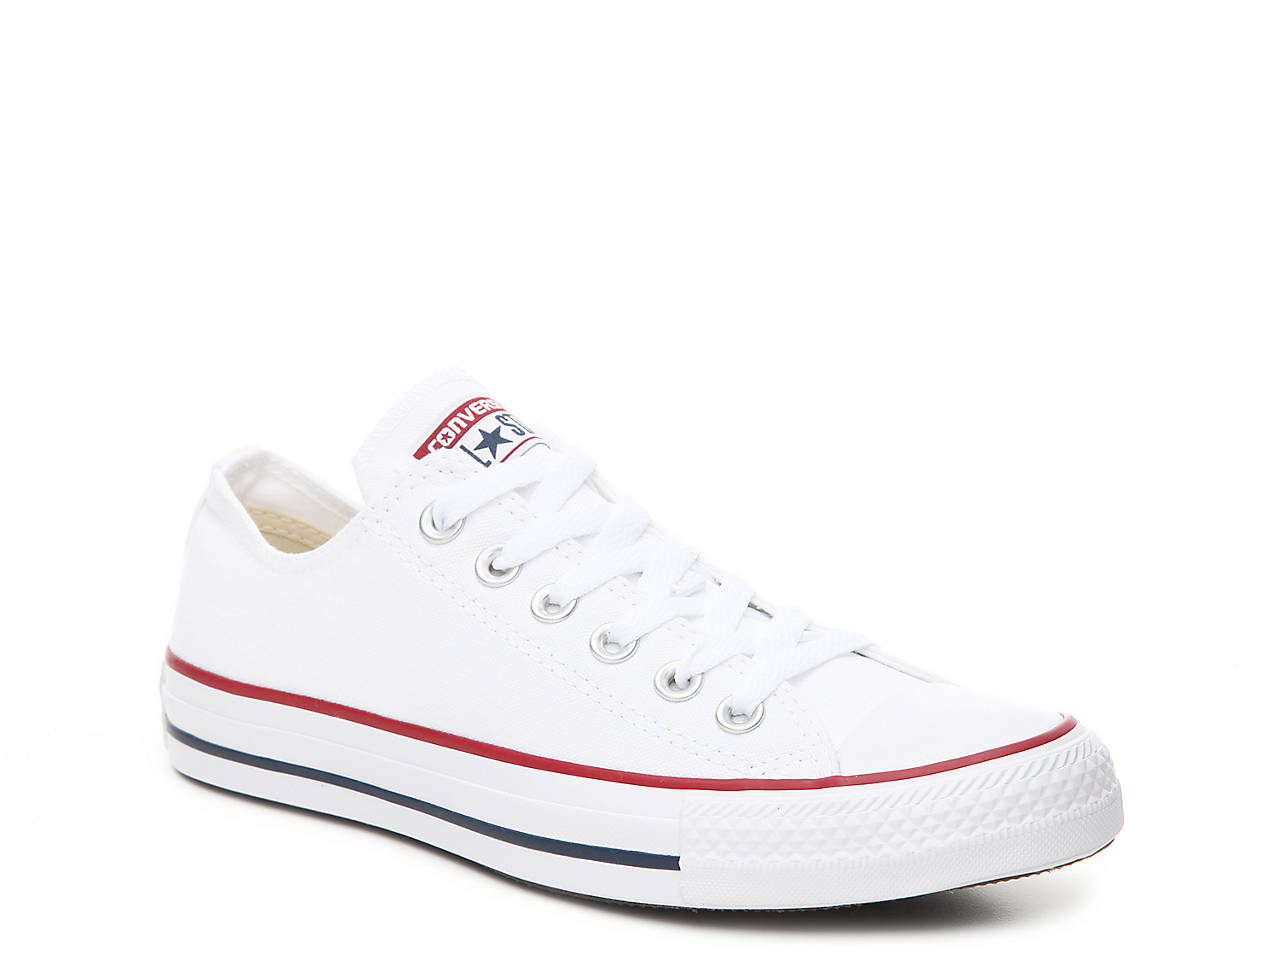 converse shoes white